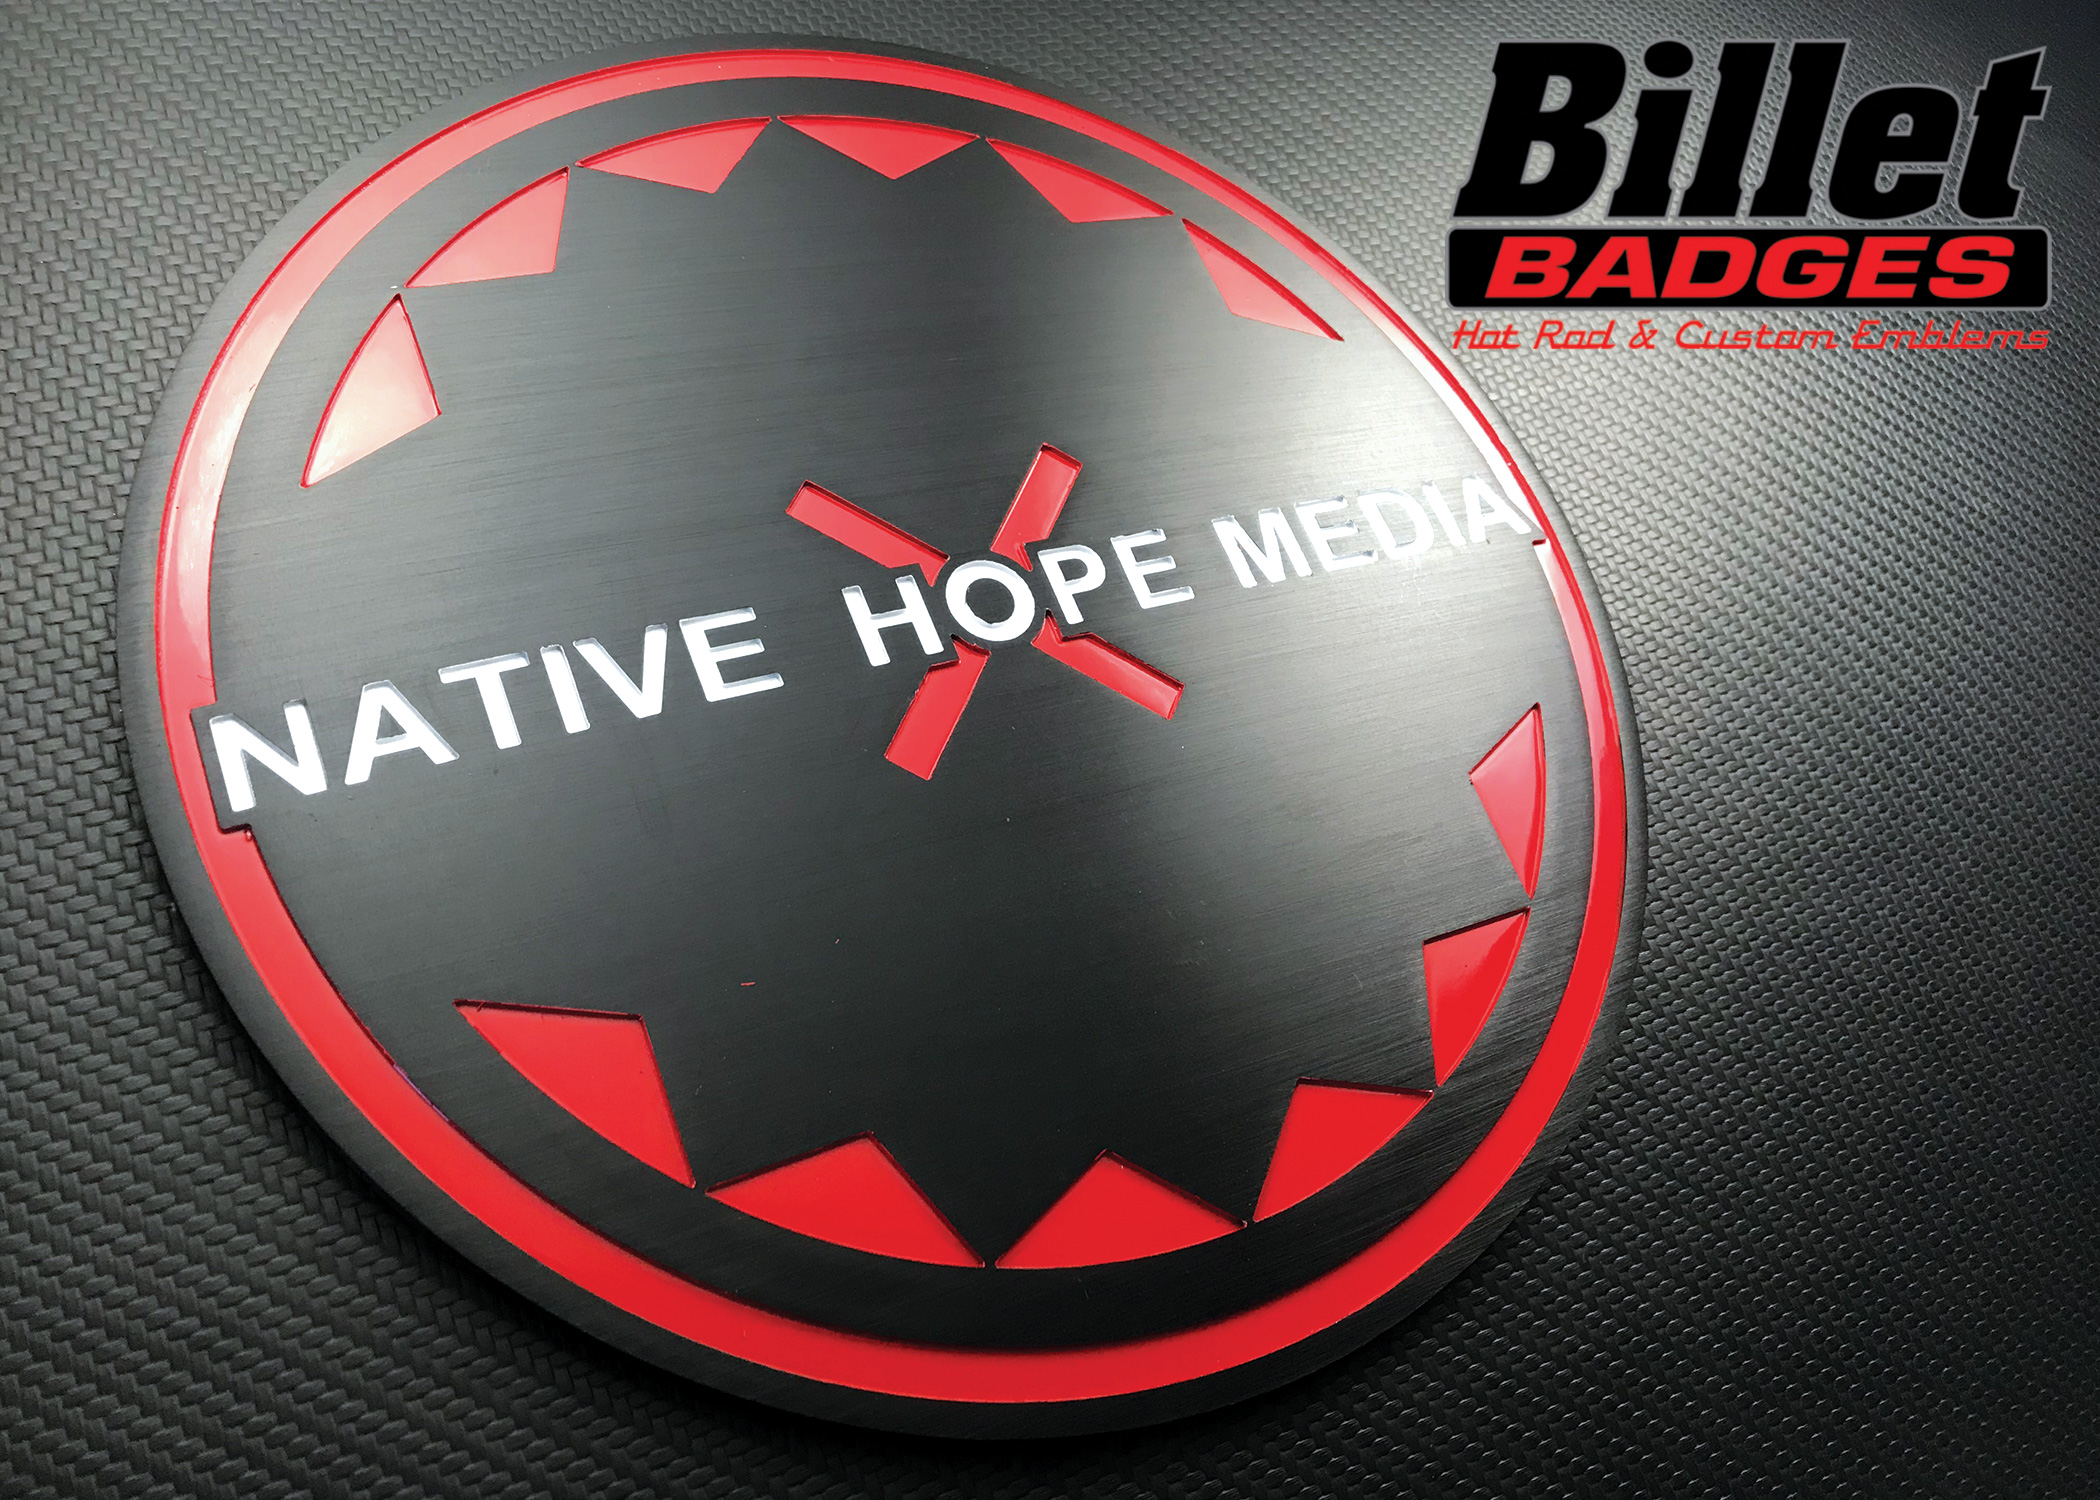 Native Hope Media